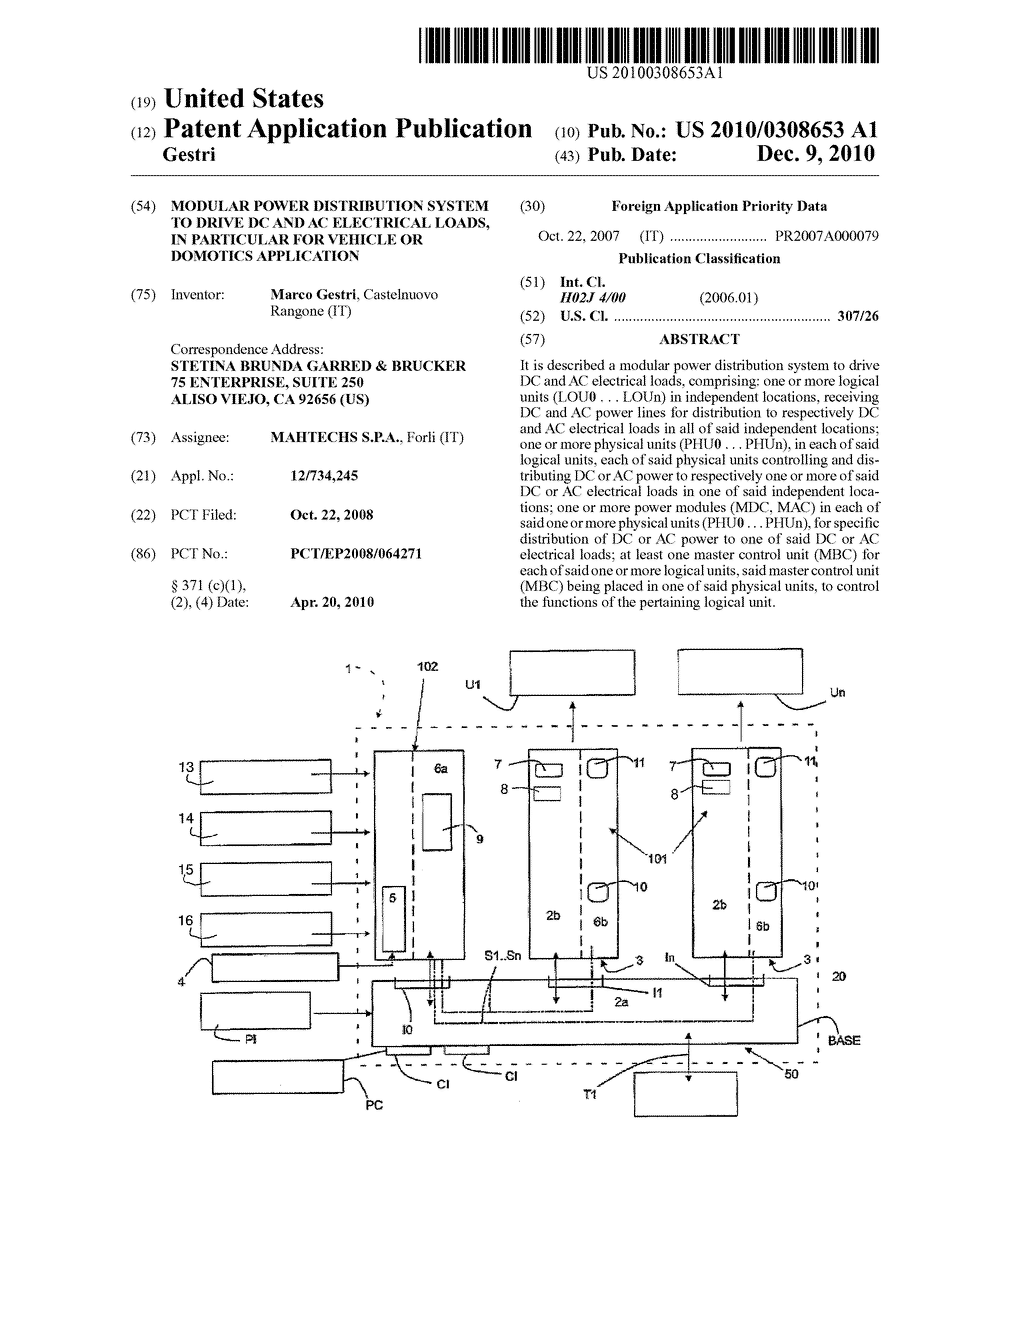 Modular Power Distribution System To Drive Dc And Ac Electrical Electric Schematic Diagram Loads In Particular For Vehicle Or Domotics Application Image 01